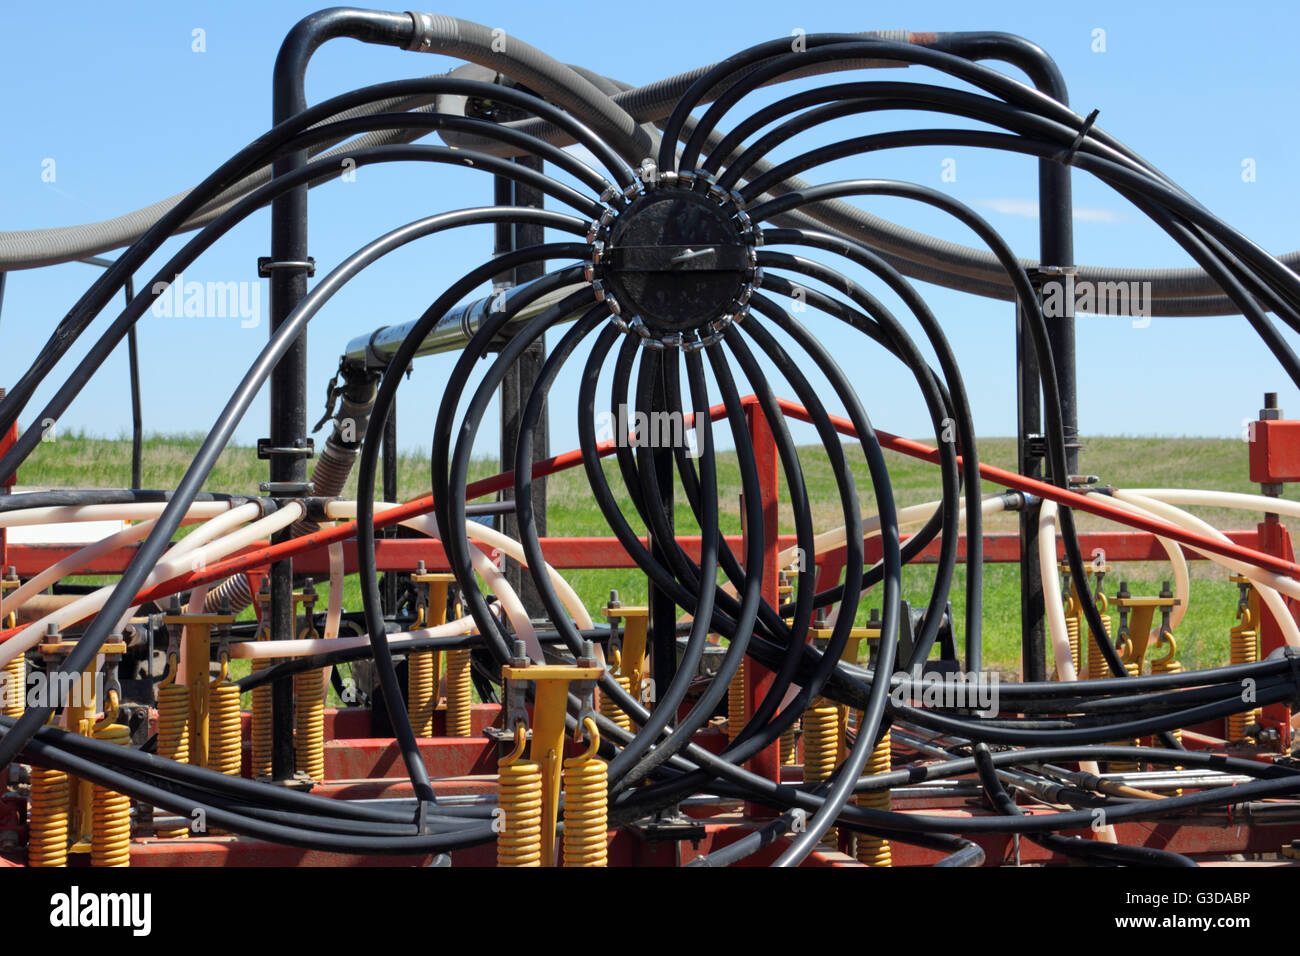 A manifold on an air hoe drill, used with an air seeder. Alberta, Canada. Stock Photo